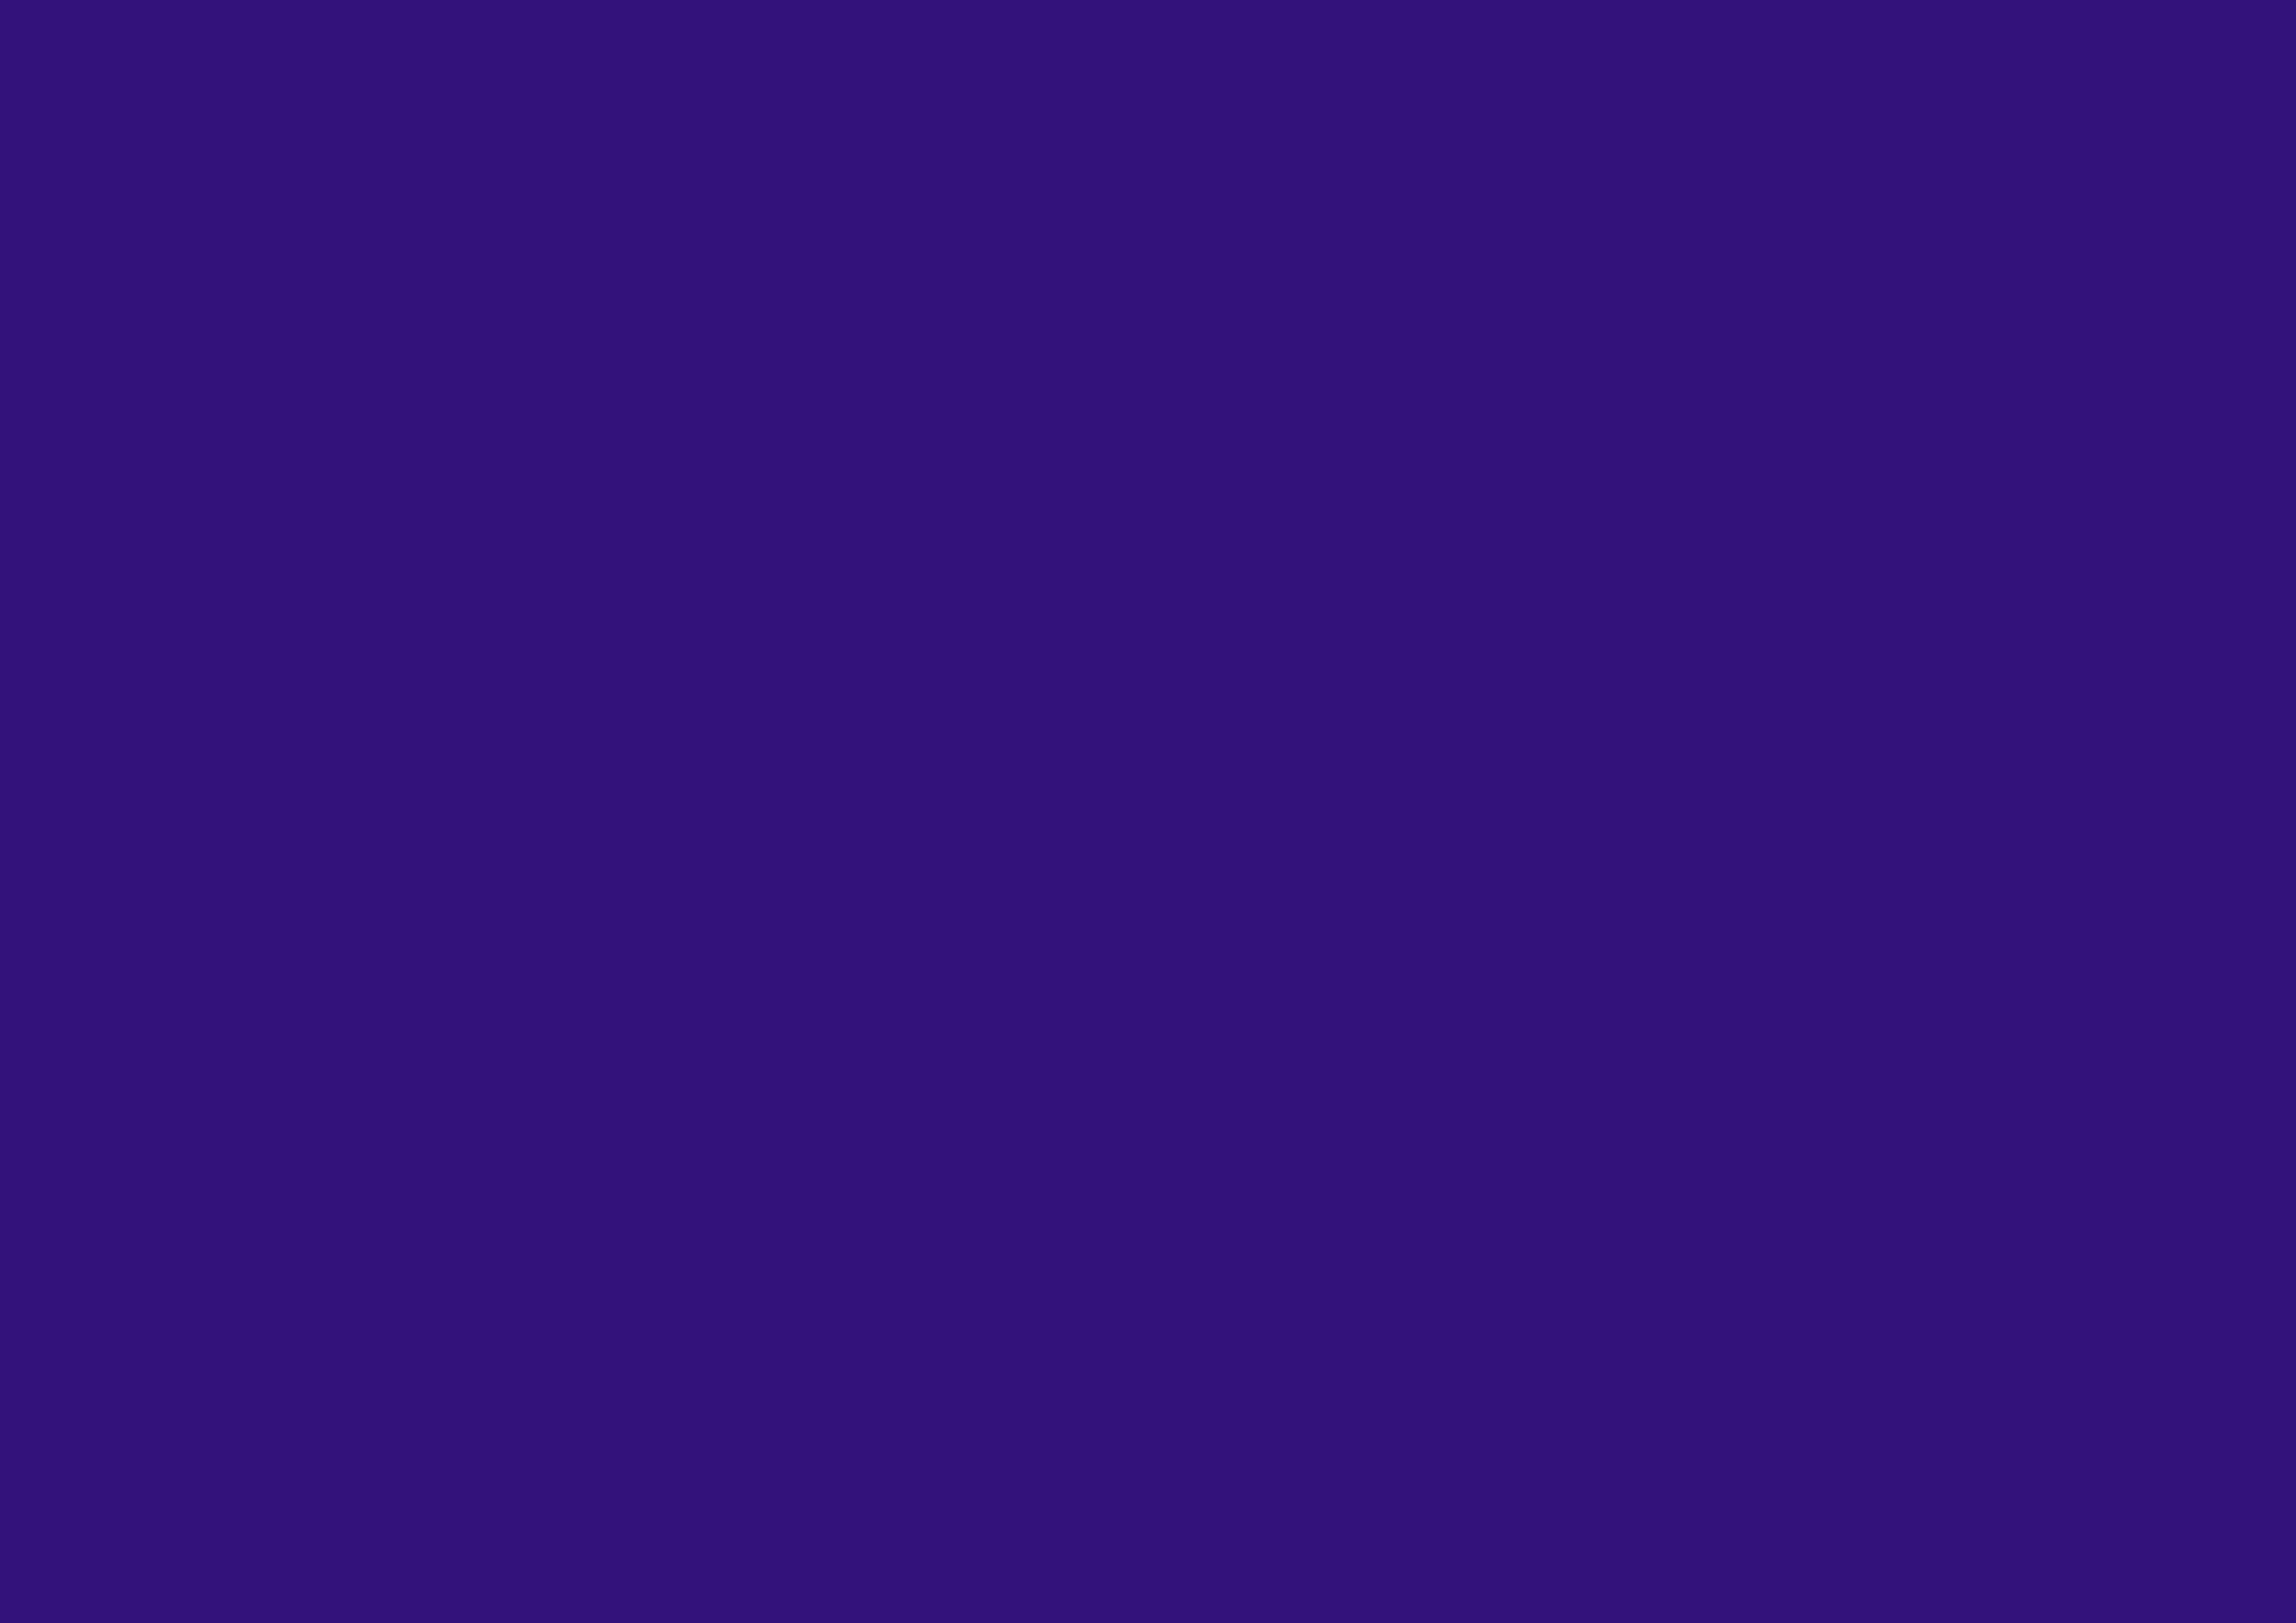 3508x2480 Persian Indigo Solid Color Background